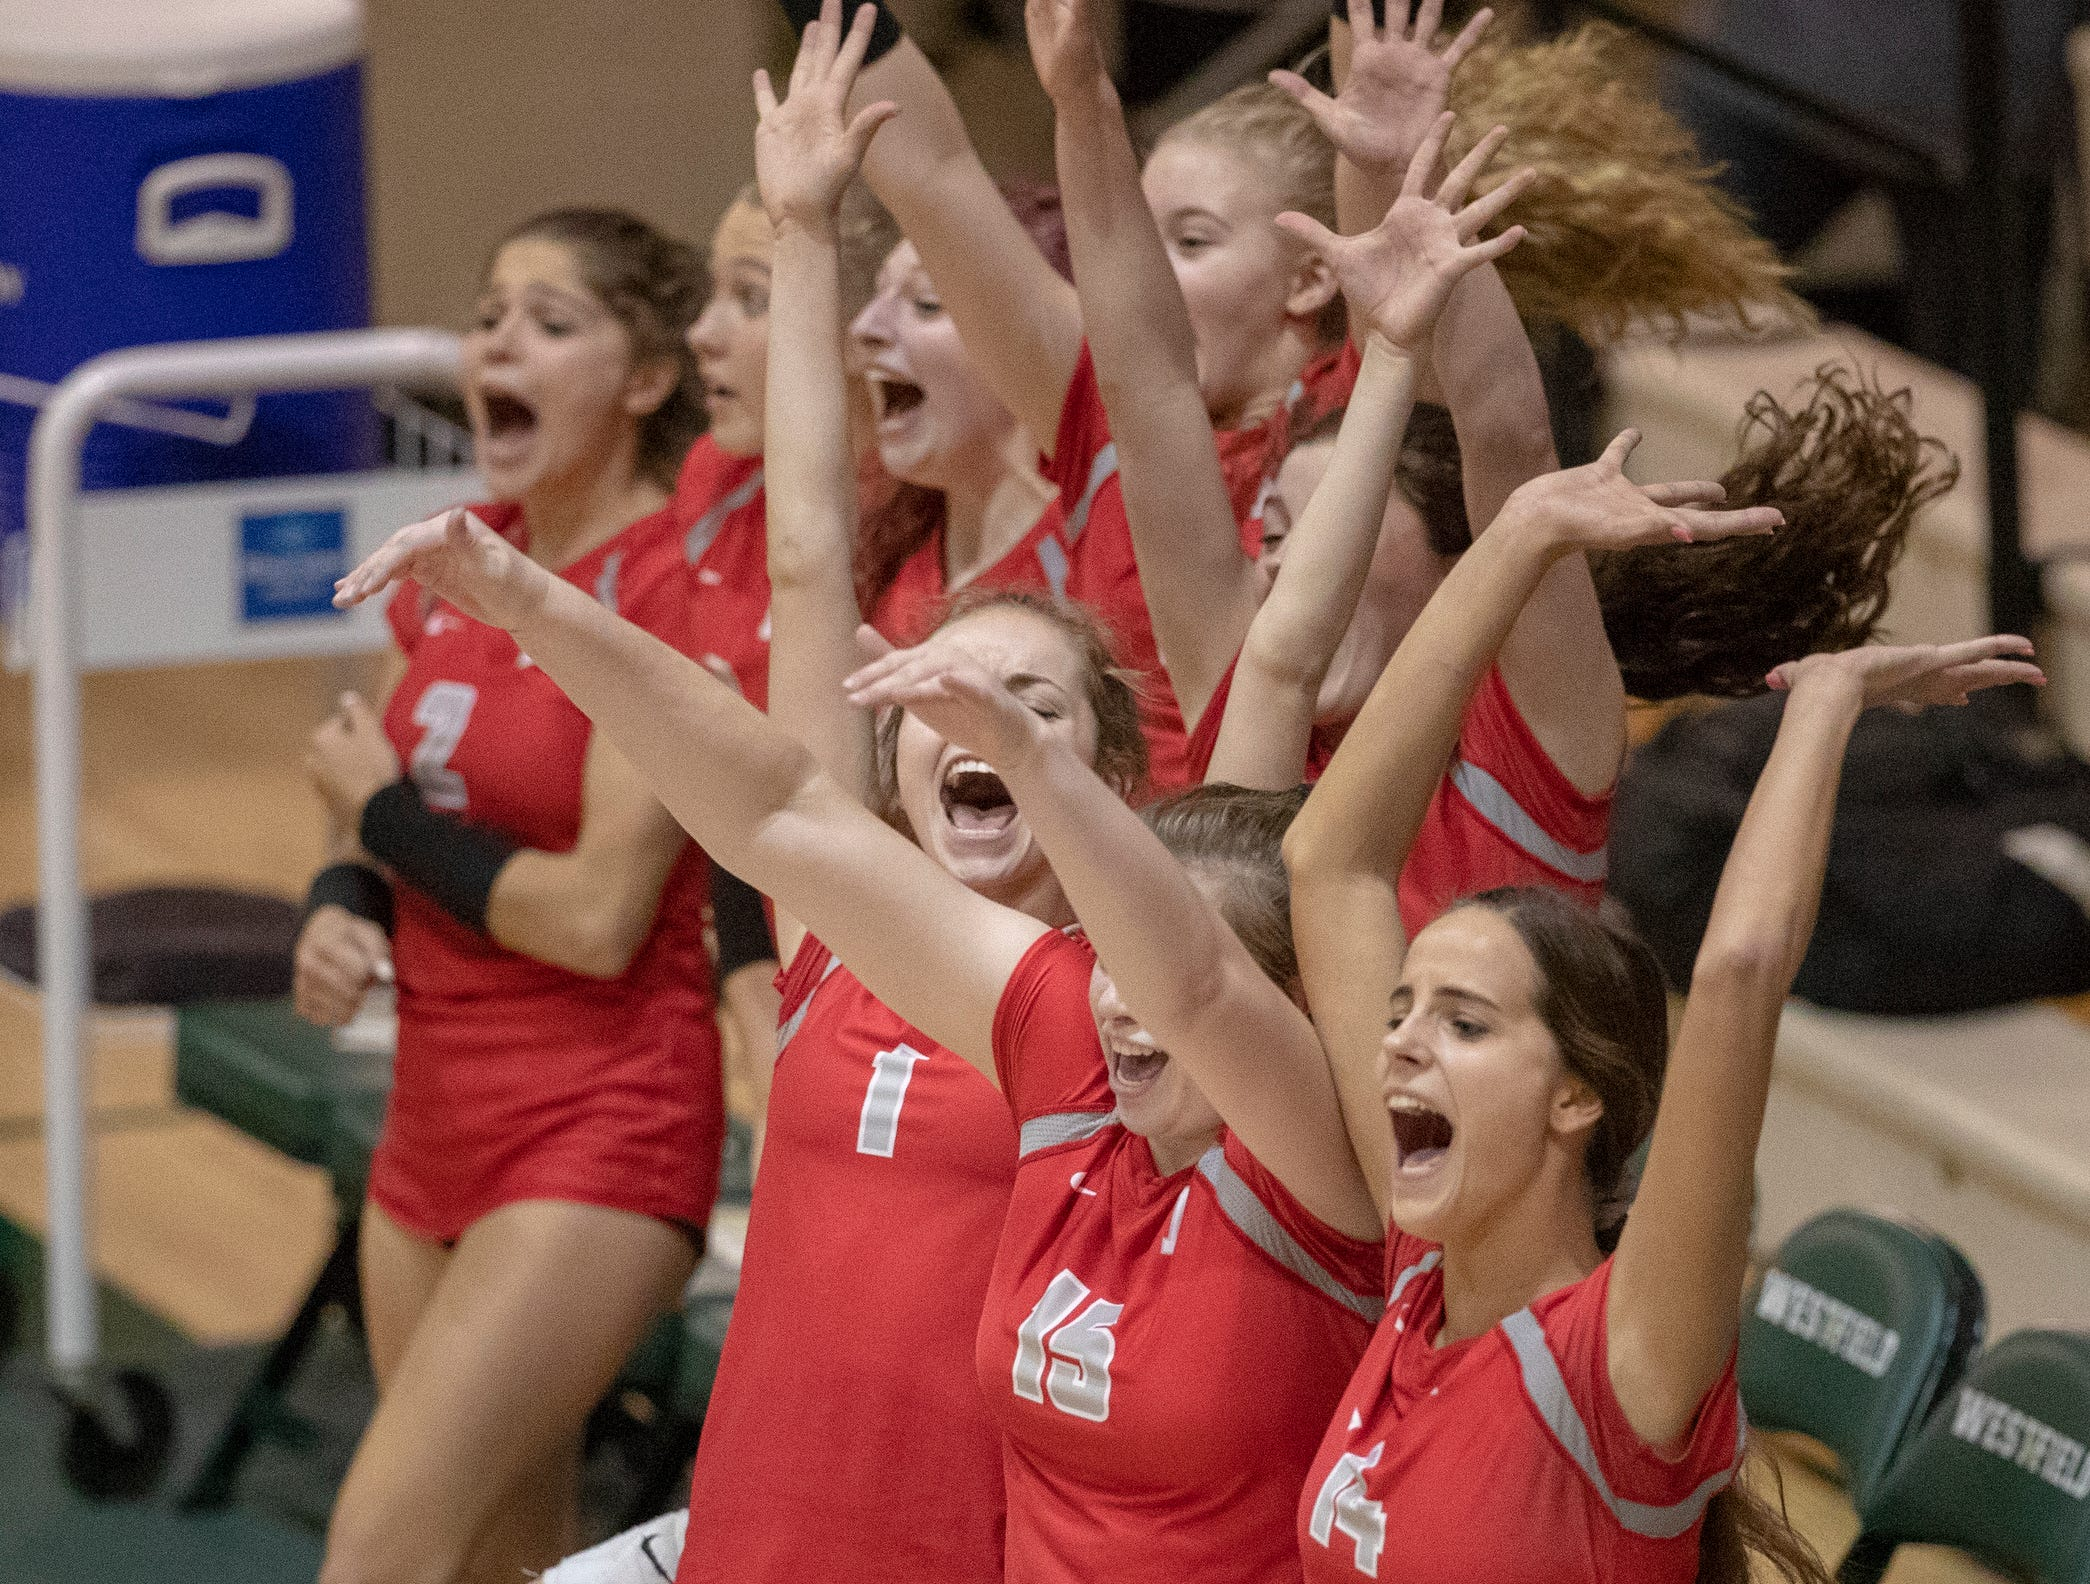 Fishers High School celebrates during their game against Hamilton Southeastern High School that saw them winning in three straight sets in the first round of the volleyball sectional at Westfield High School, Westfield, Thursday, Oct. 11, 2018. The win matches them up with Westfield High School for a game on Saturday morning at 11a.m.